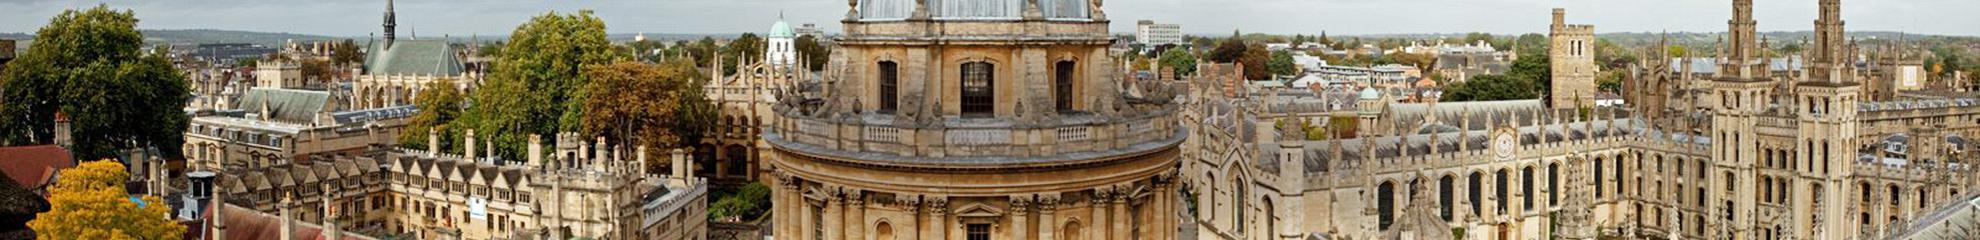 Vacanze studio inglese Oxford